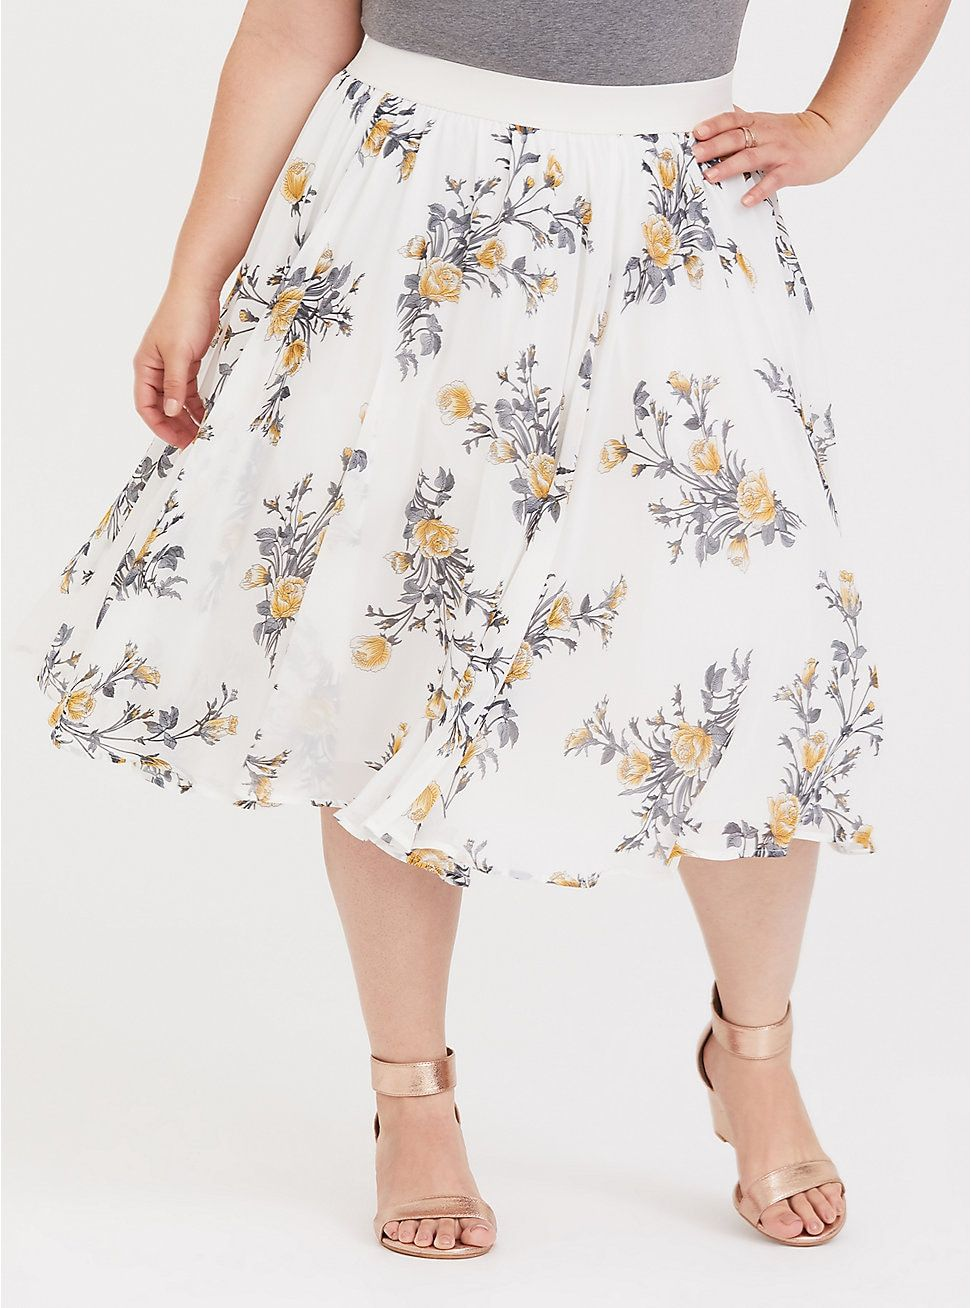 7b5e15736e31 Ivory Floral Chiffon Midi Skirt | 2018: Wishes, Wants and the ...